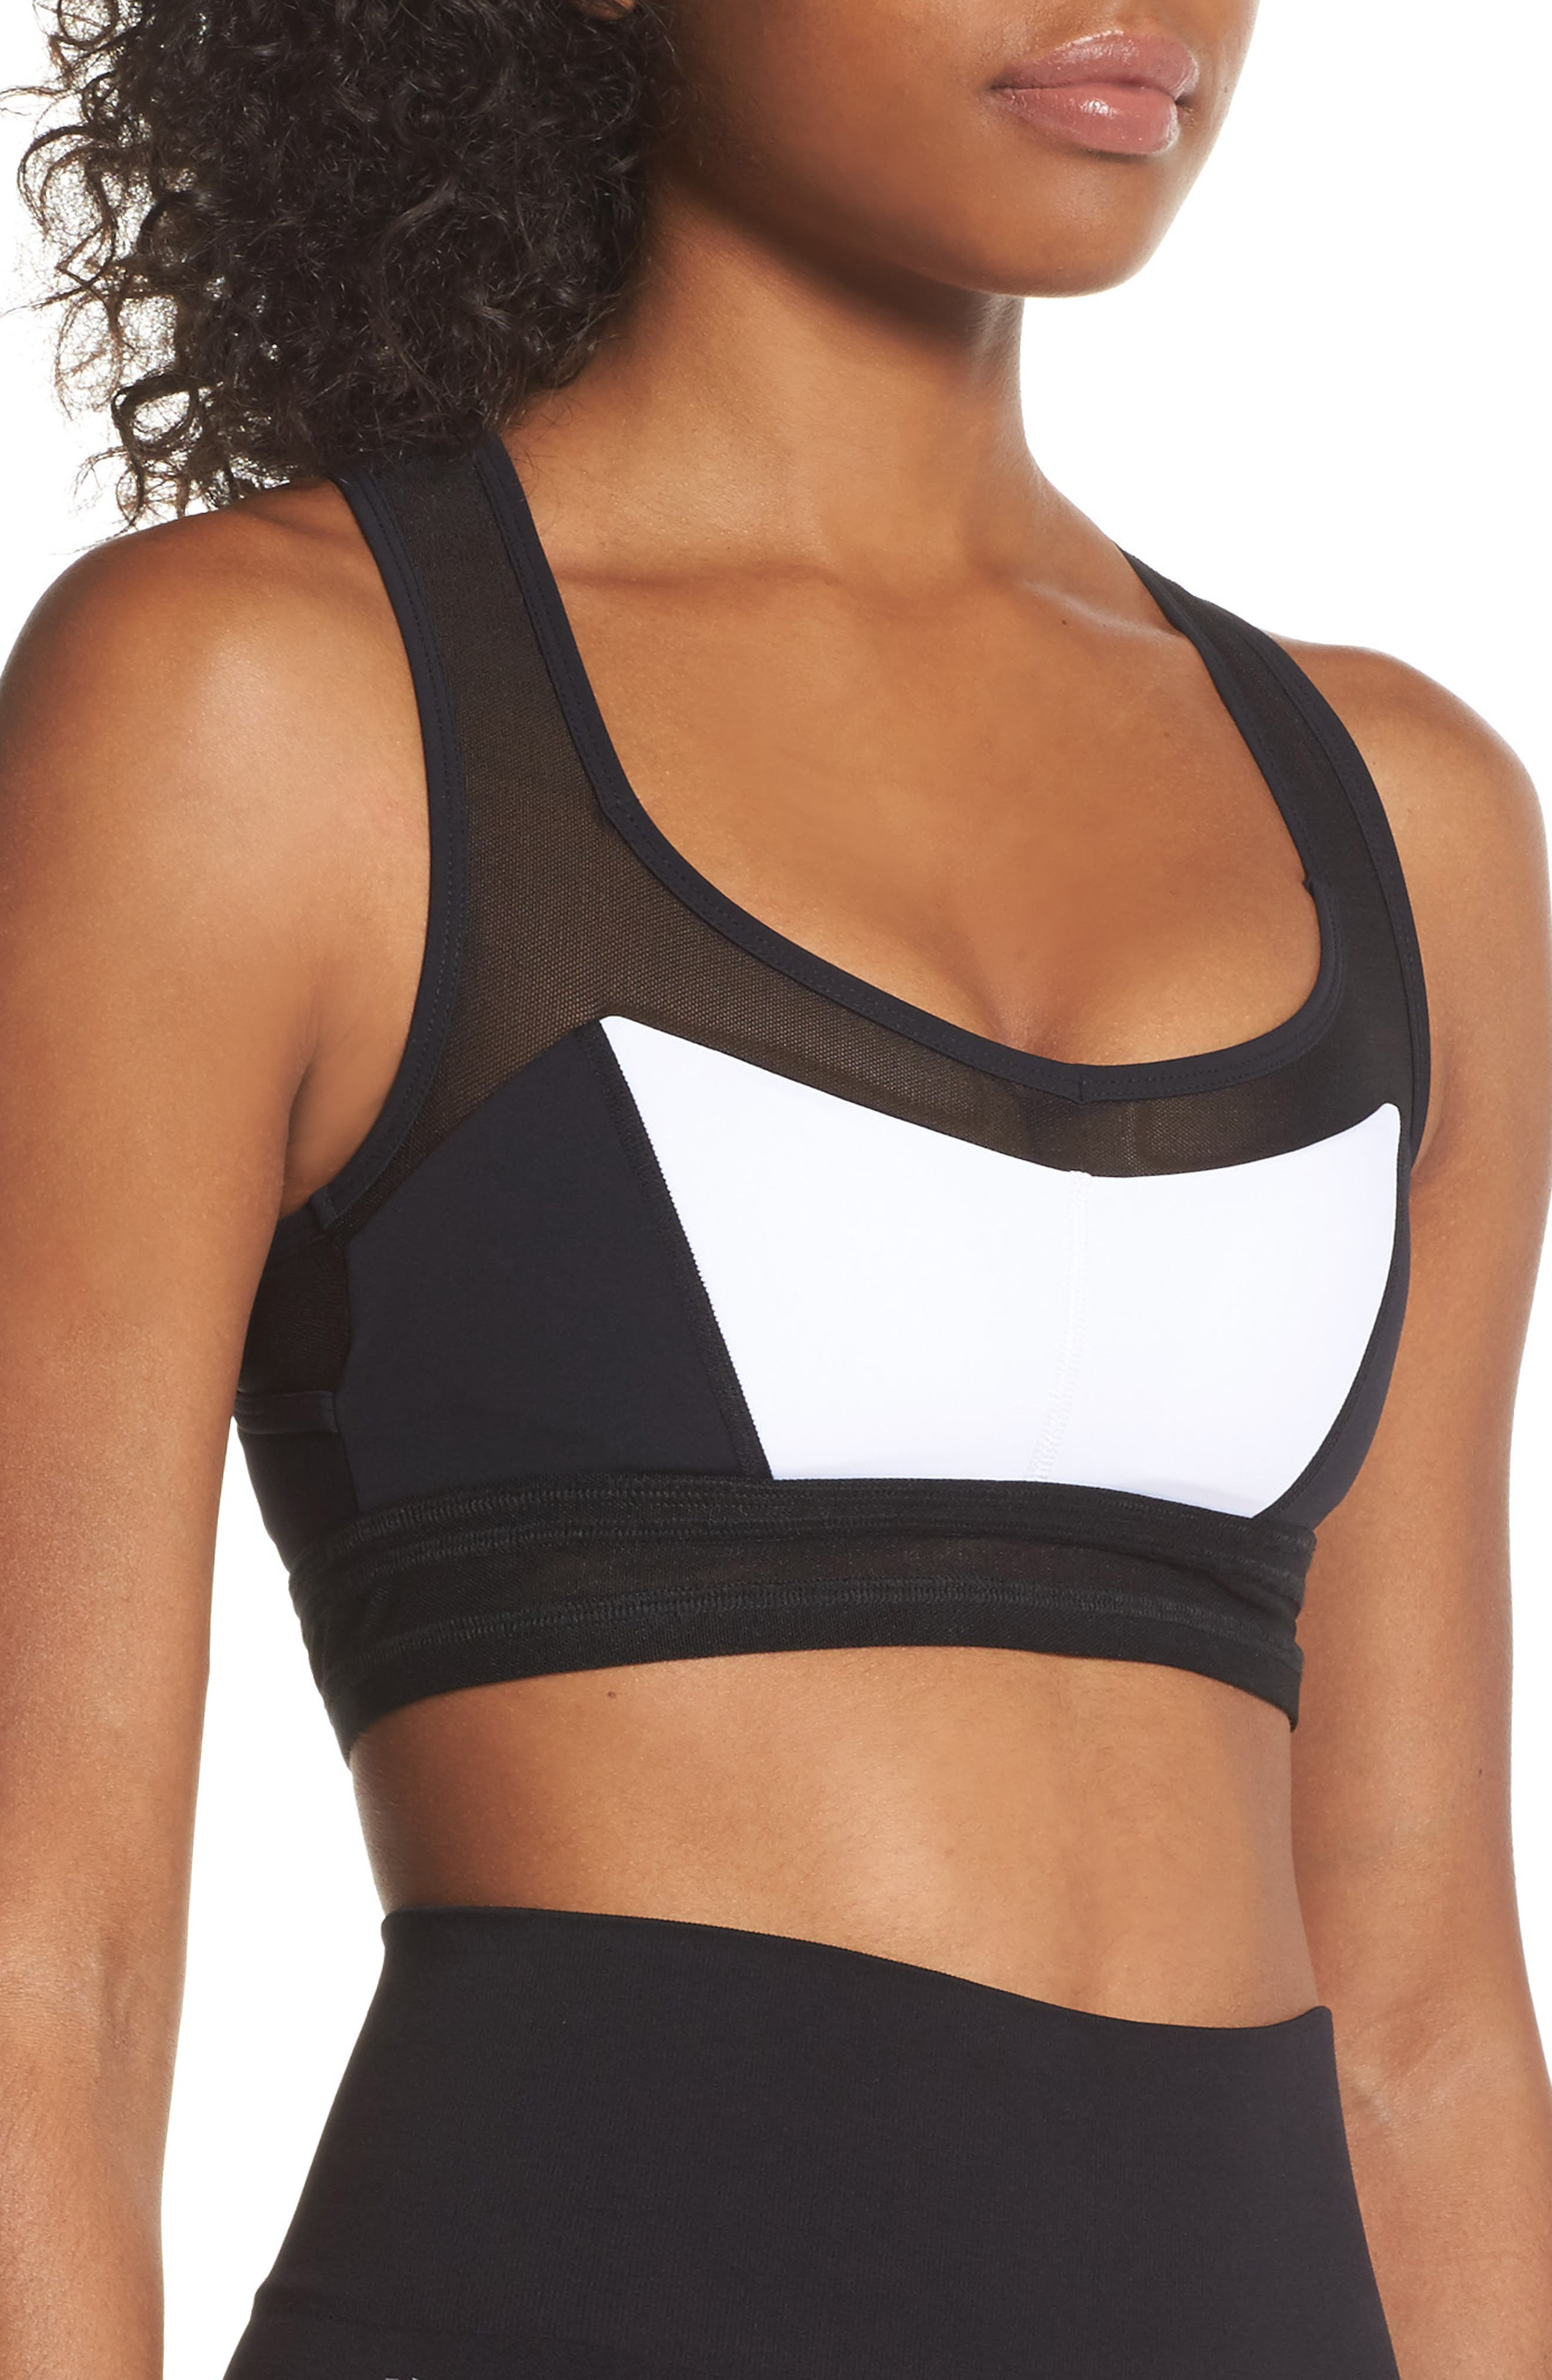 BoomBoom Athletica Mesh Sports Bra,                             Alternate thumbnail 3, color,                             010